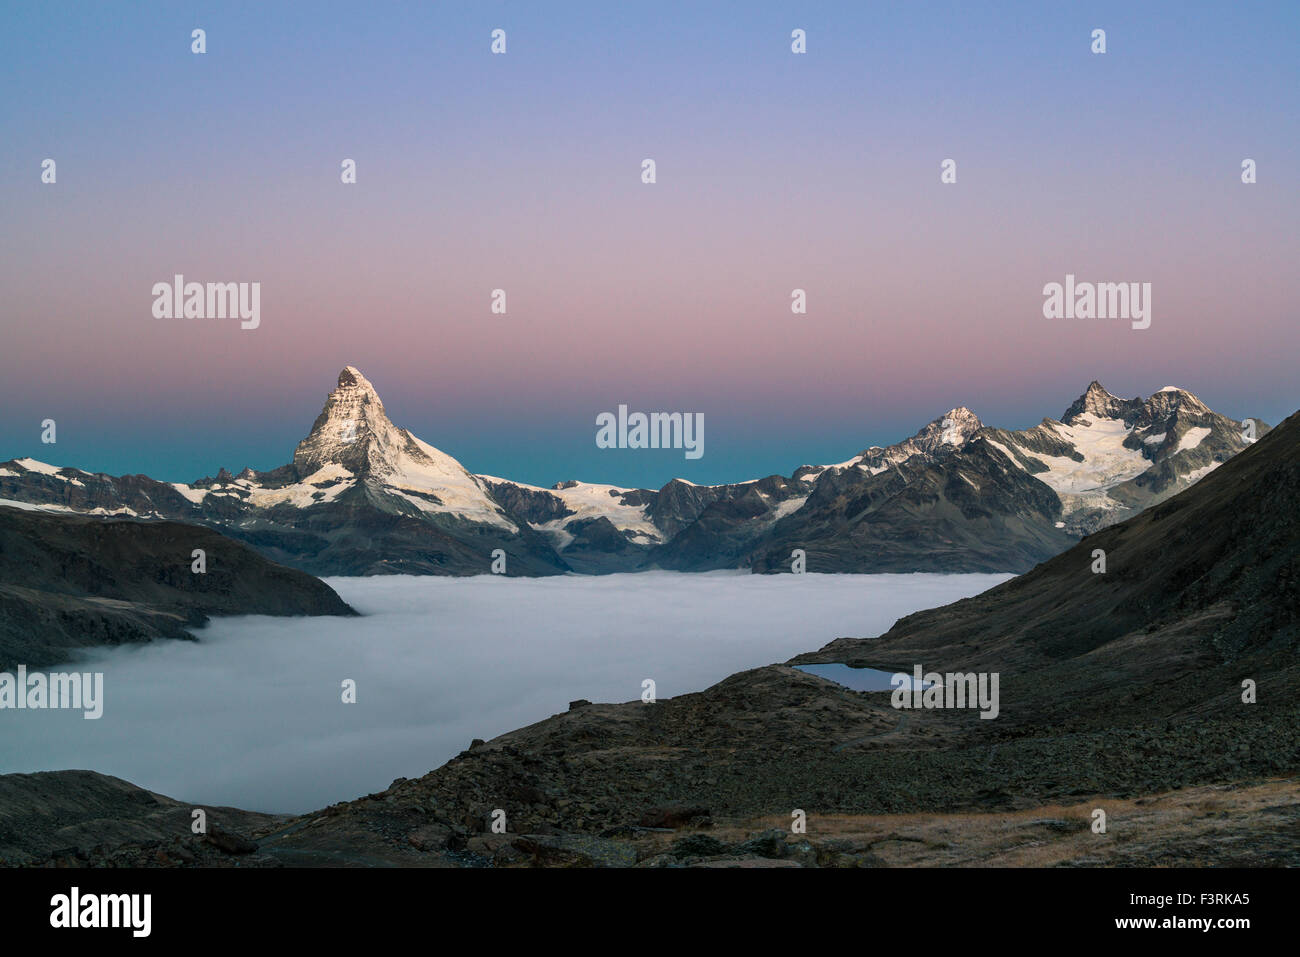 Matterhorn with clouds at dawn, Switzerland - Stock Image